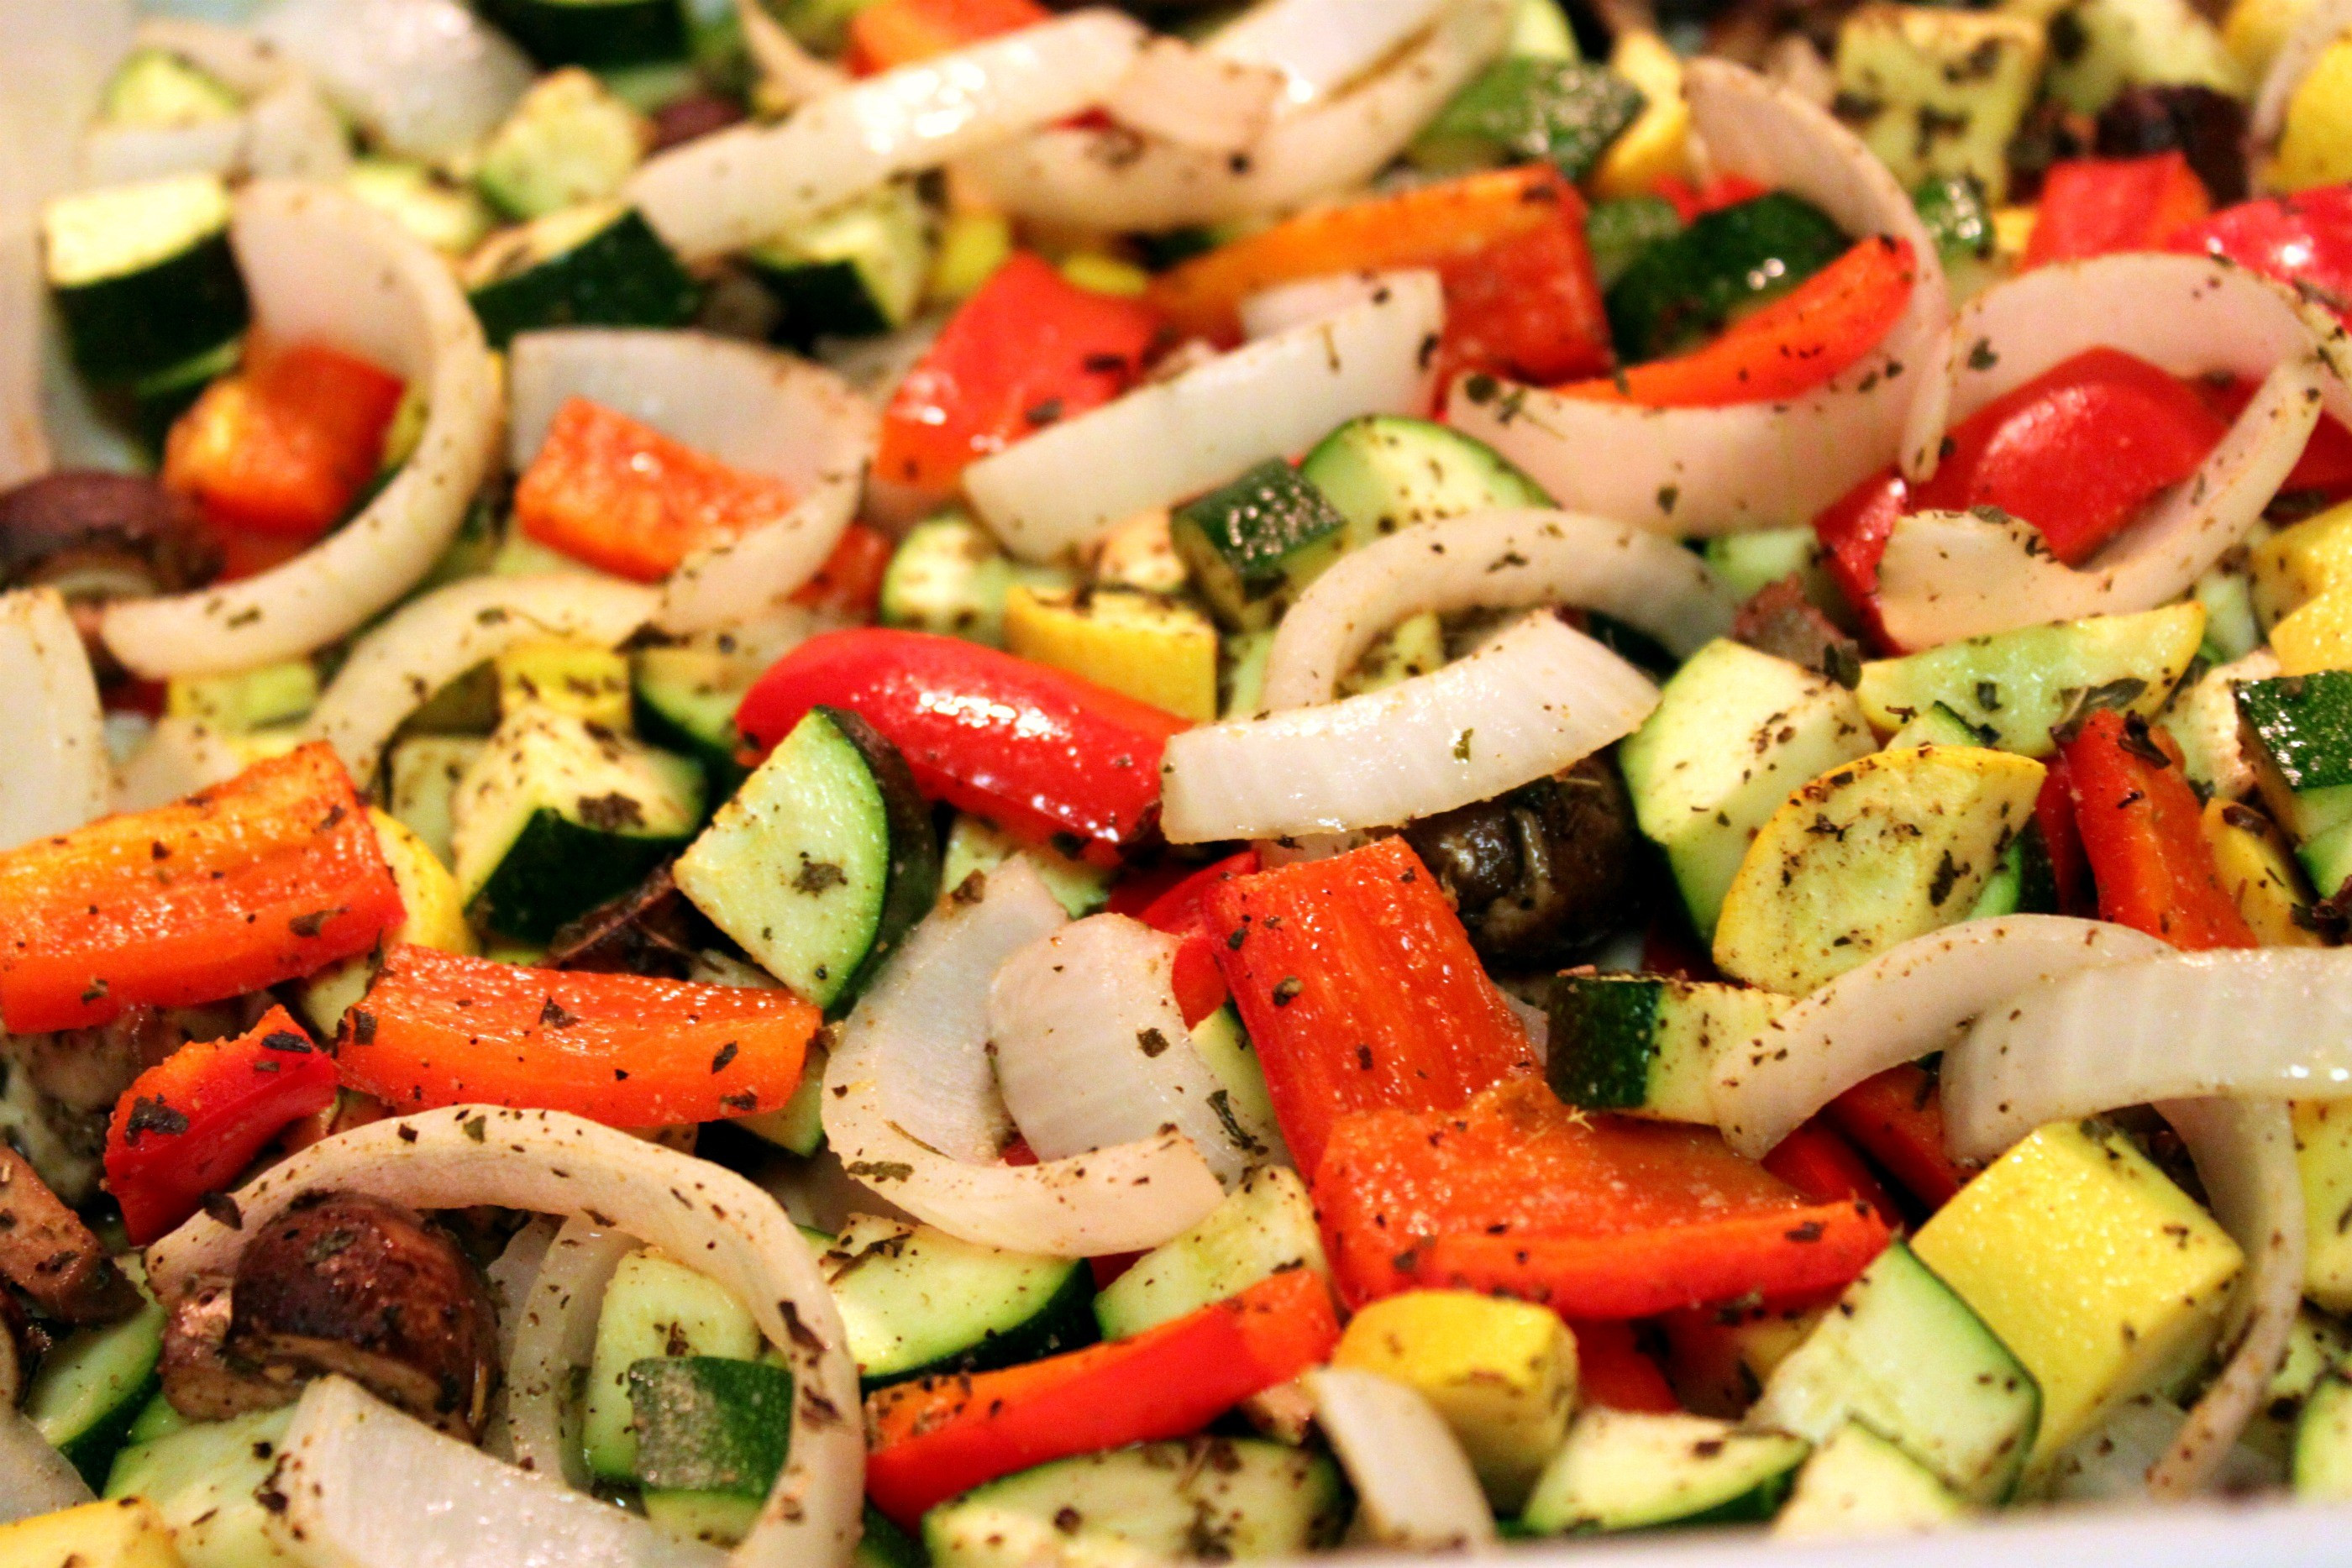 Roasted Vegetables Oven  Healthy Baked Penne with Roasted Ve ables The Picky Eater